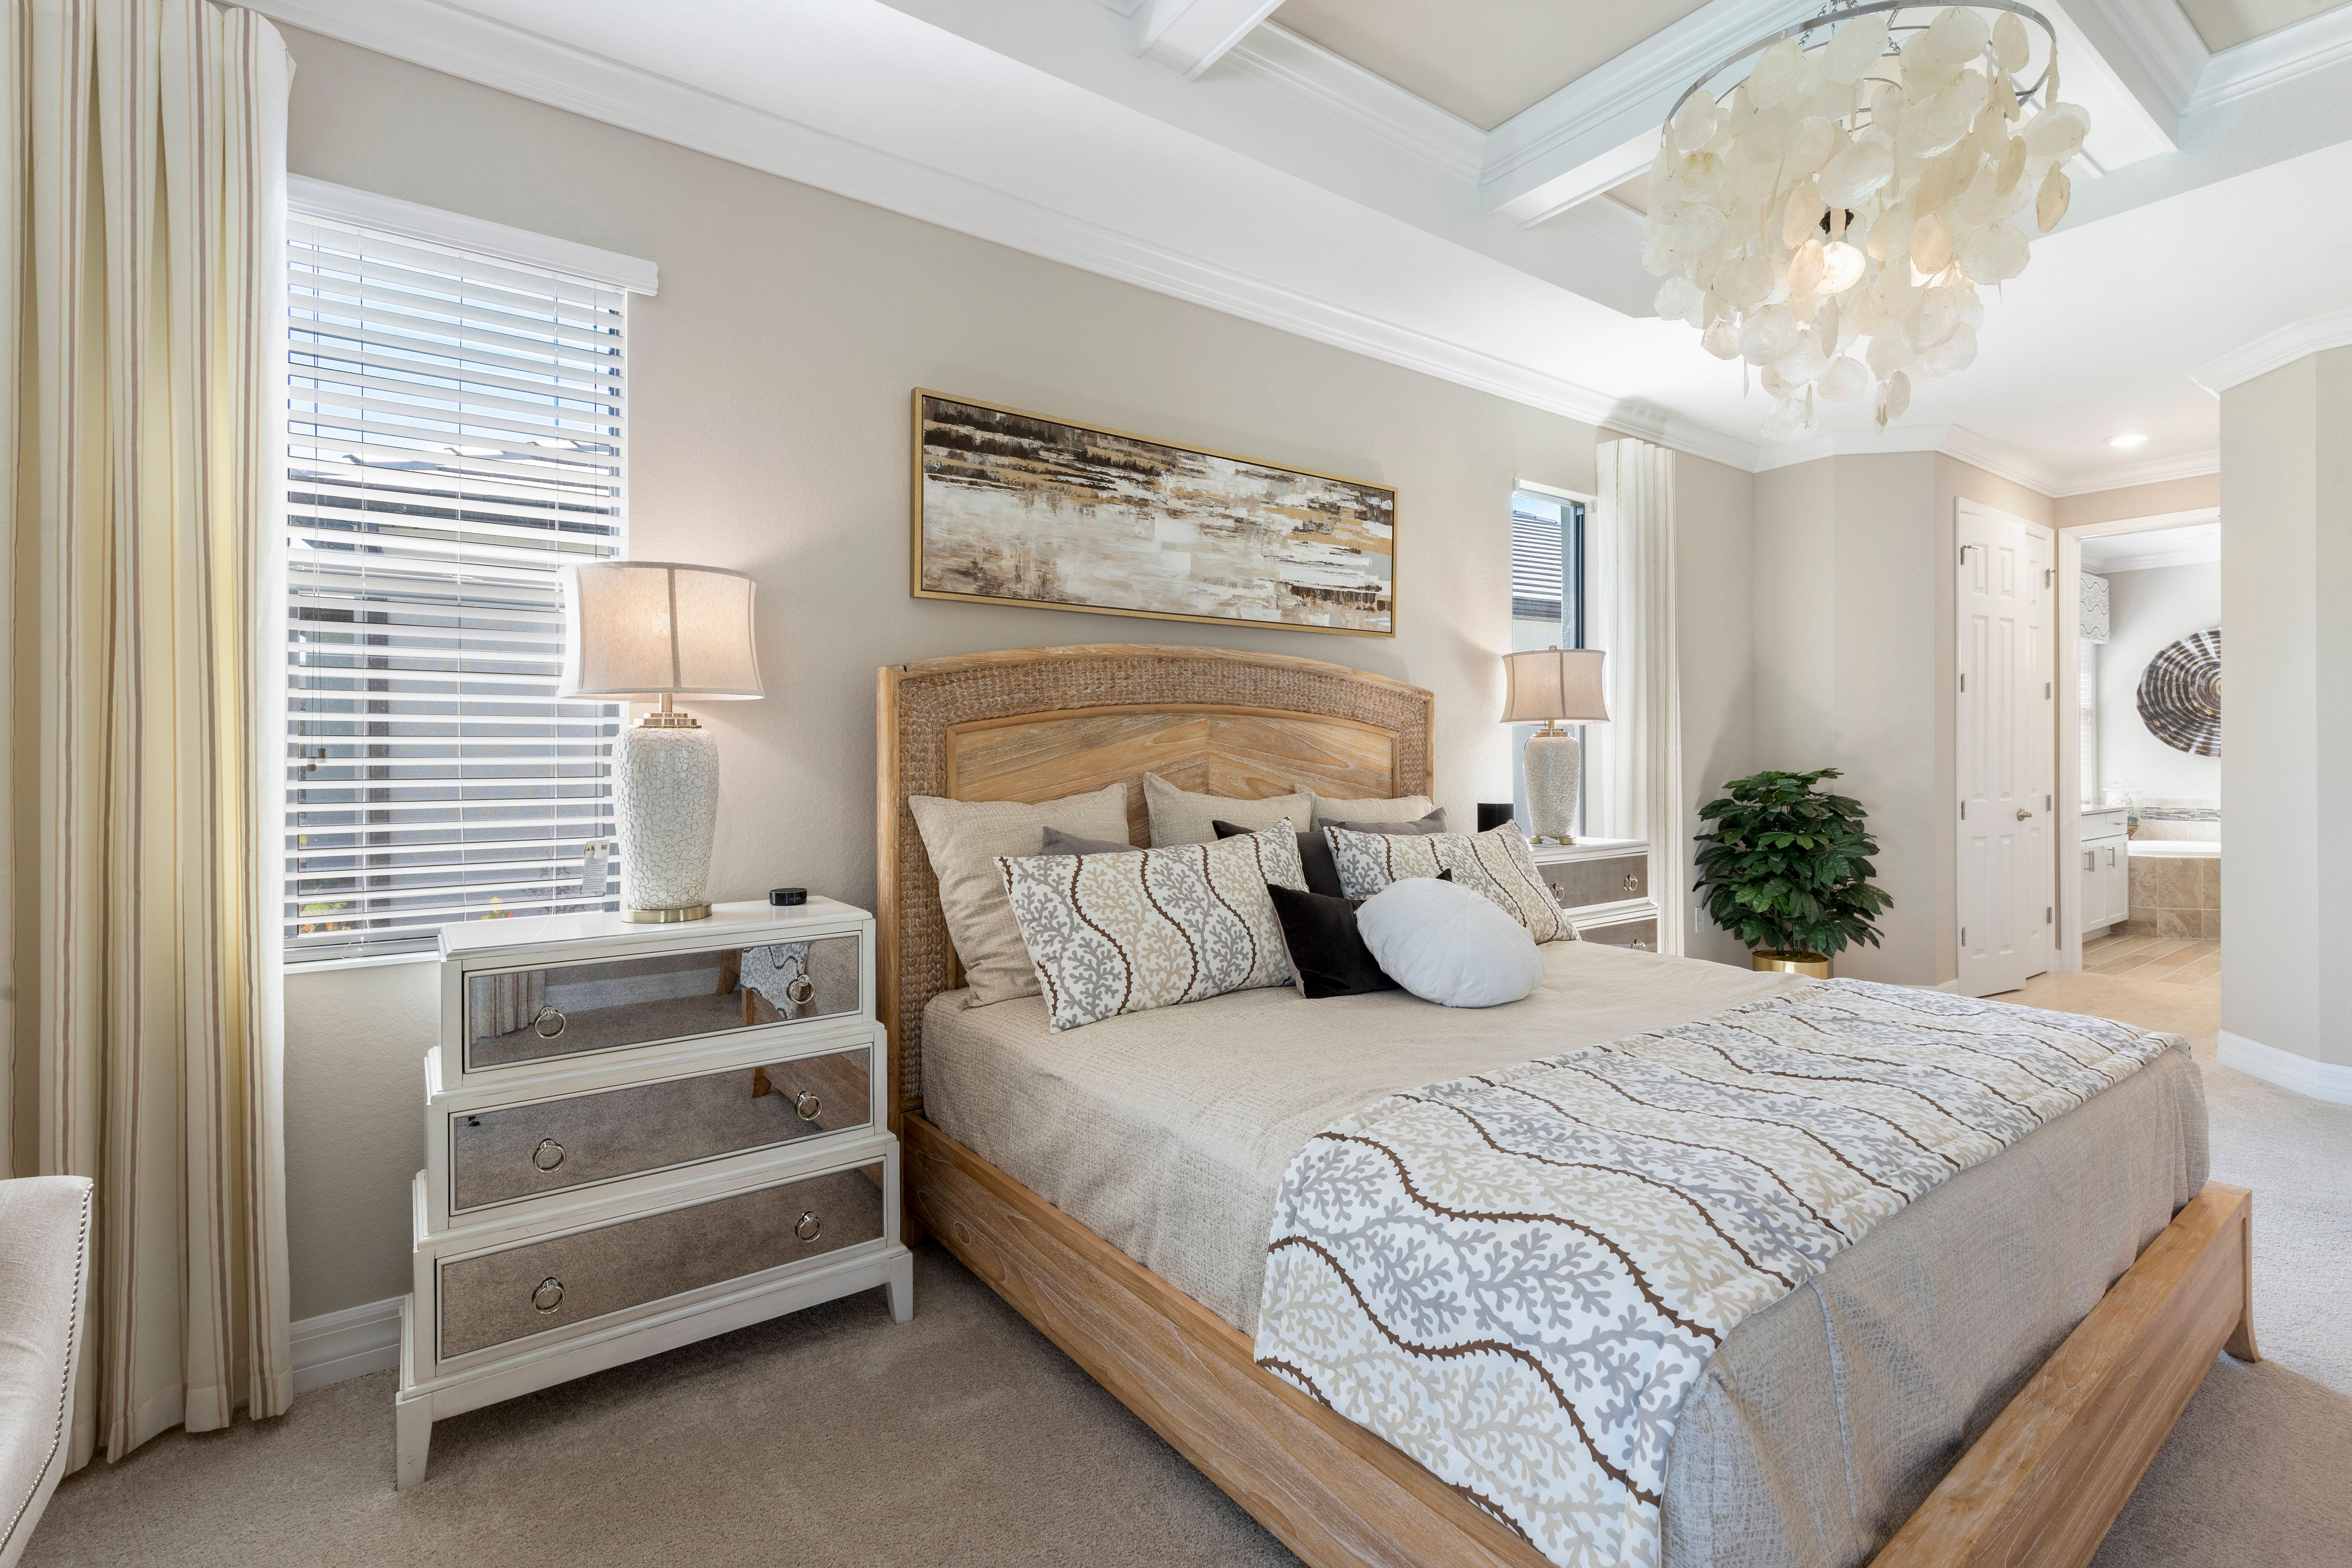 Bedroom featured in the Remington By Lennar in Punta Gorda, FL